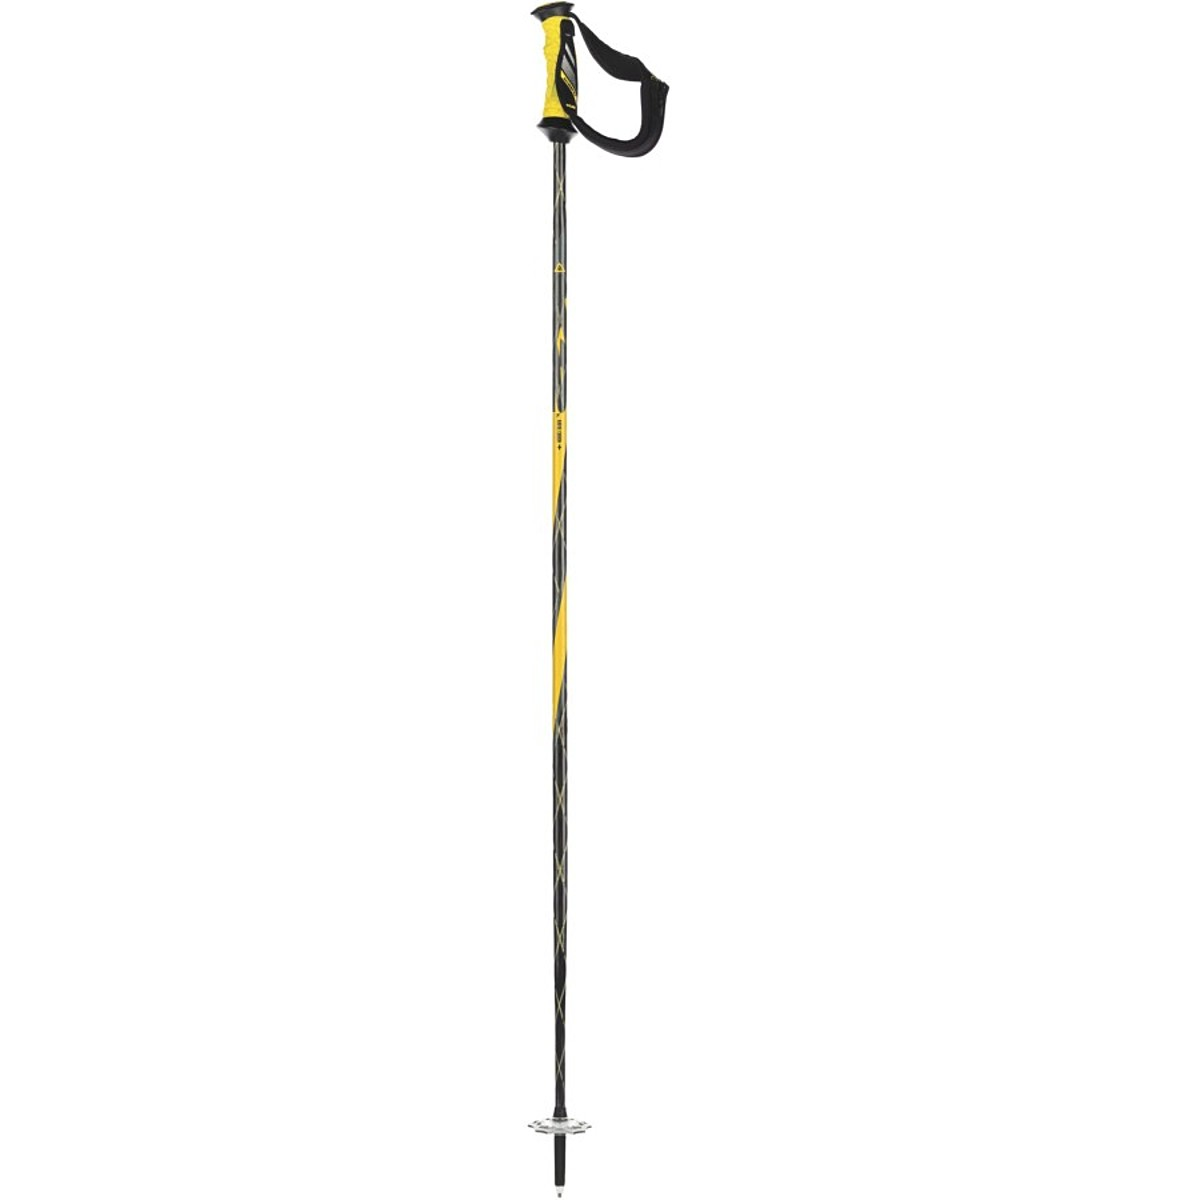 K2 Power 10 Airfoil Carbon Ski Pole